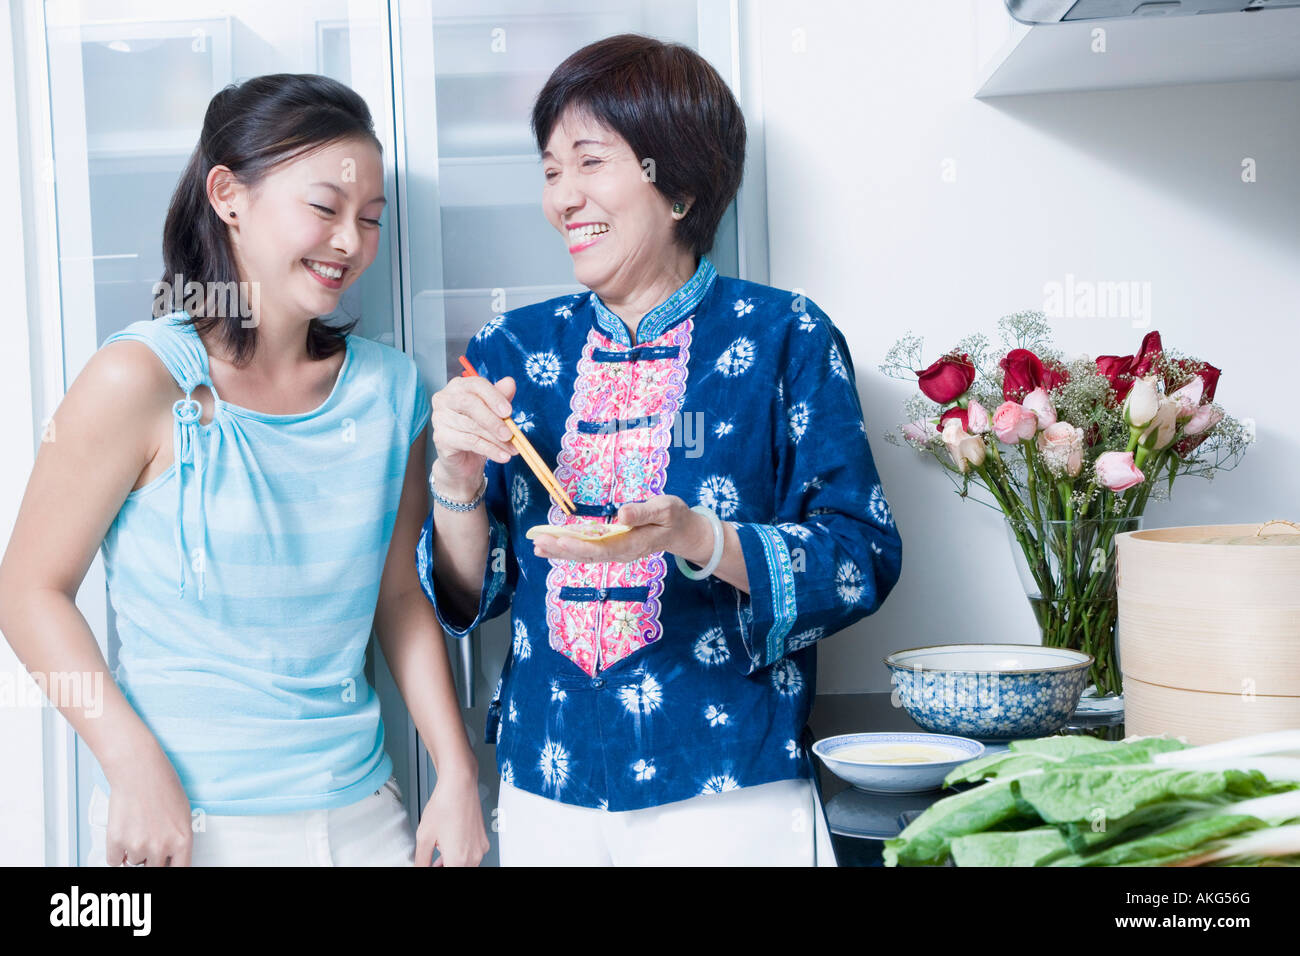 Senior woman preparing food with her granddaughter standing beside her and smiling - Stock Image